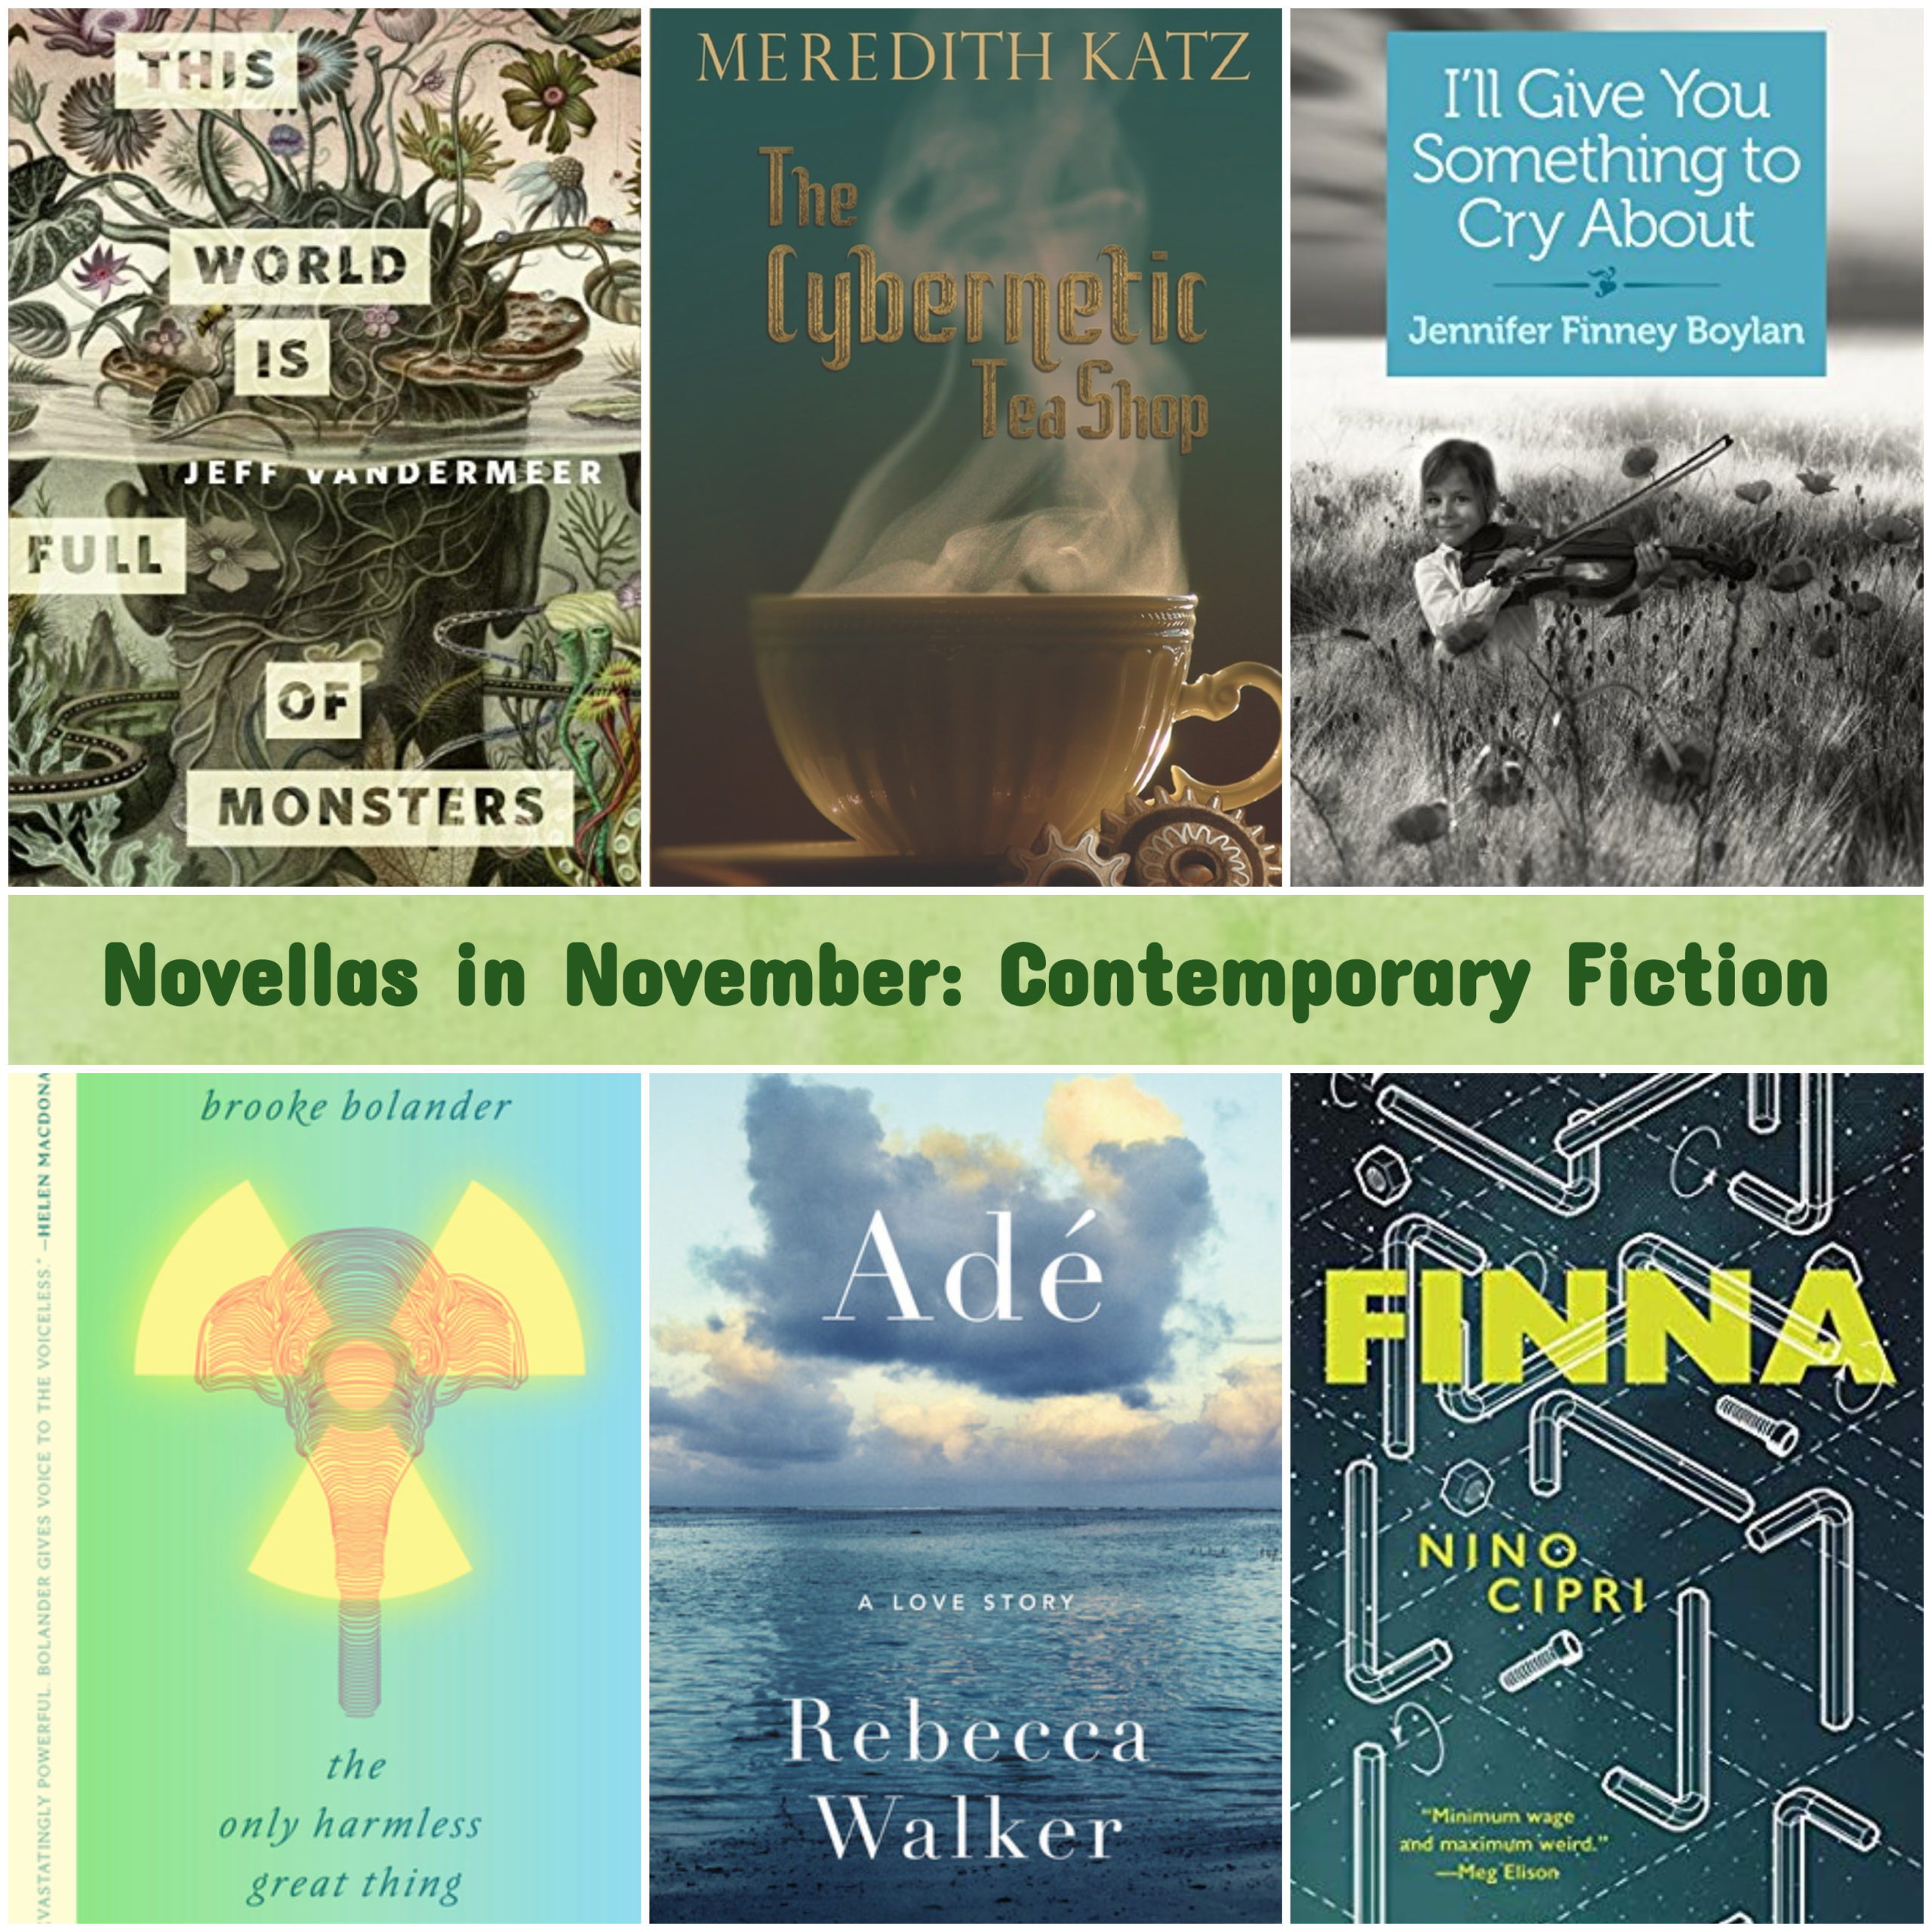 Novellas in November: Contemporary Fiction